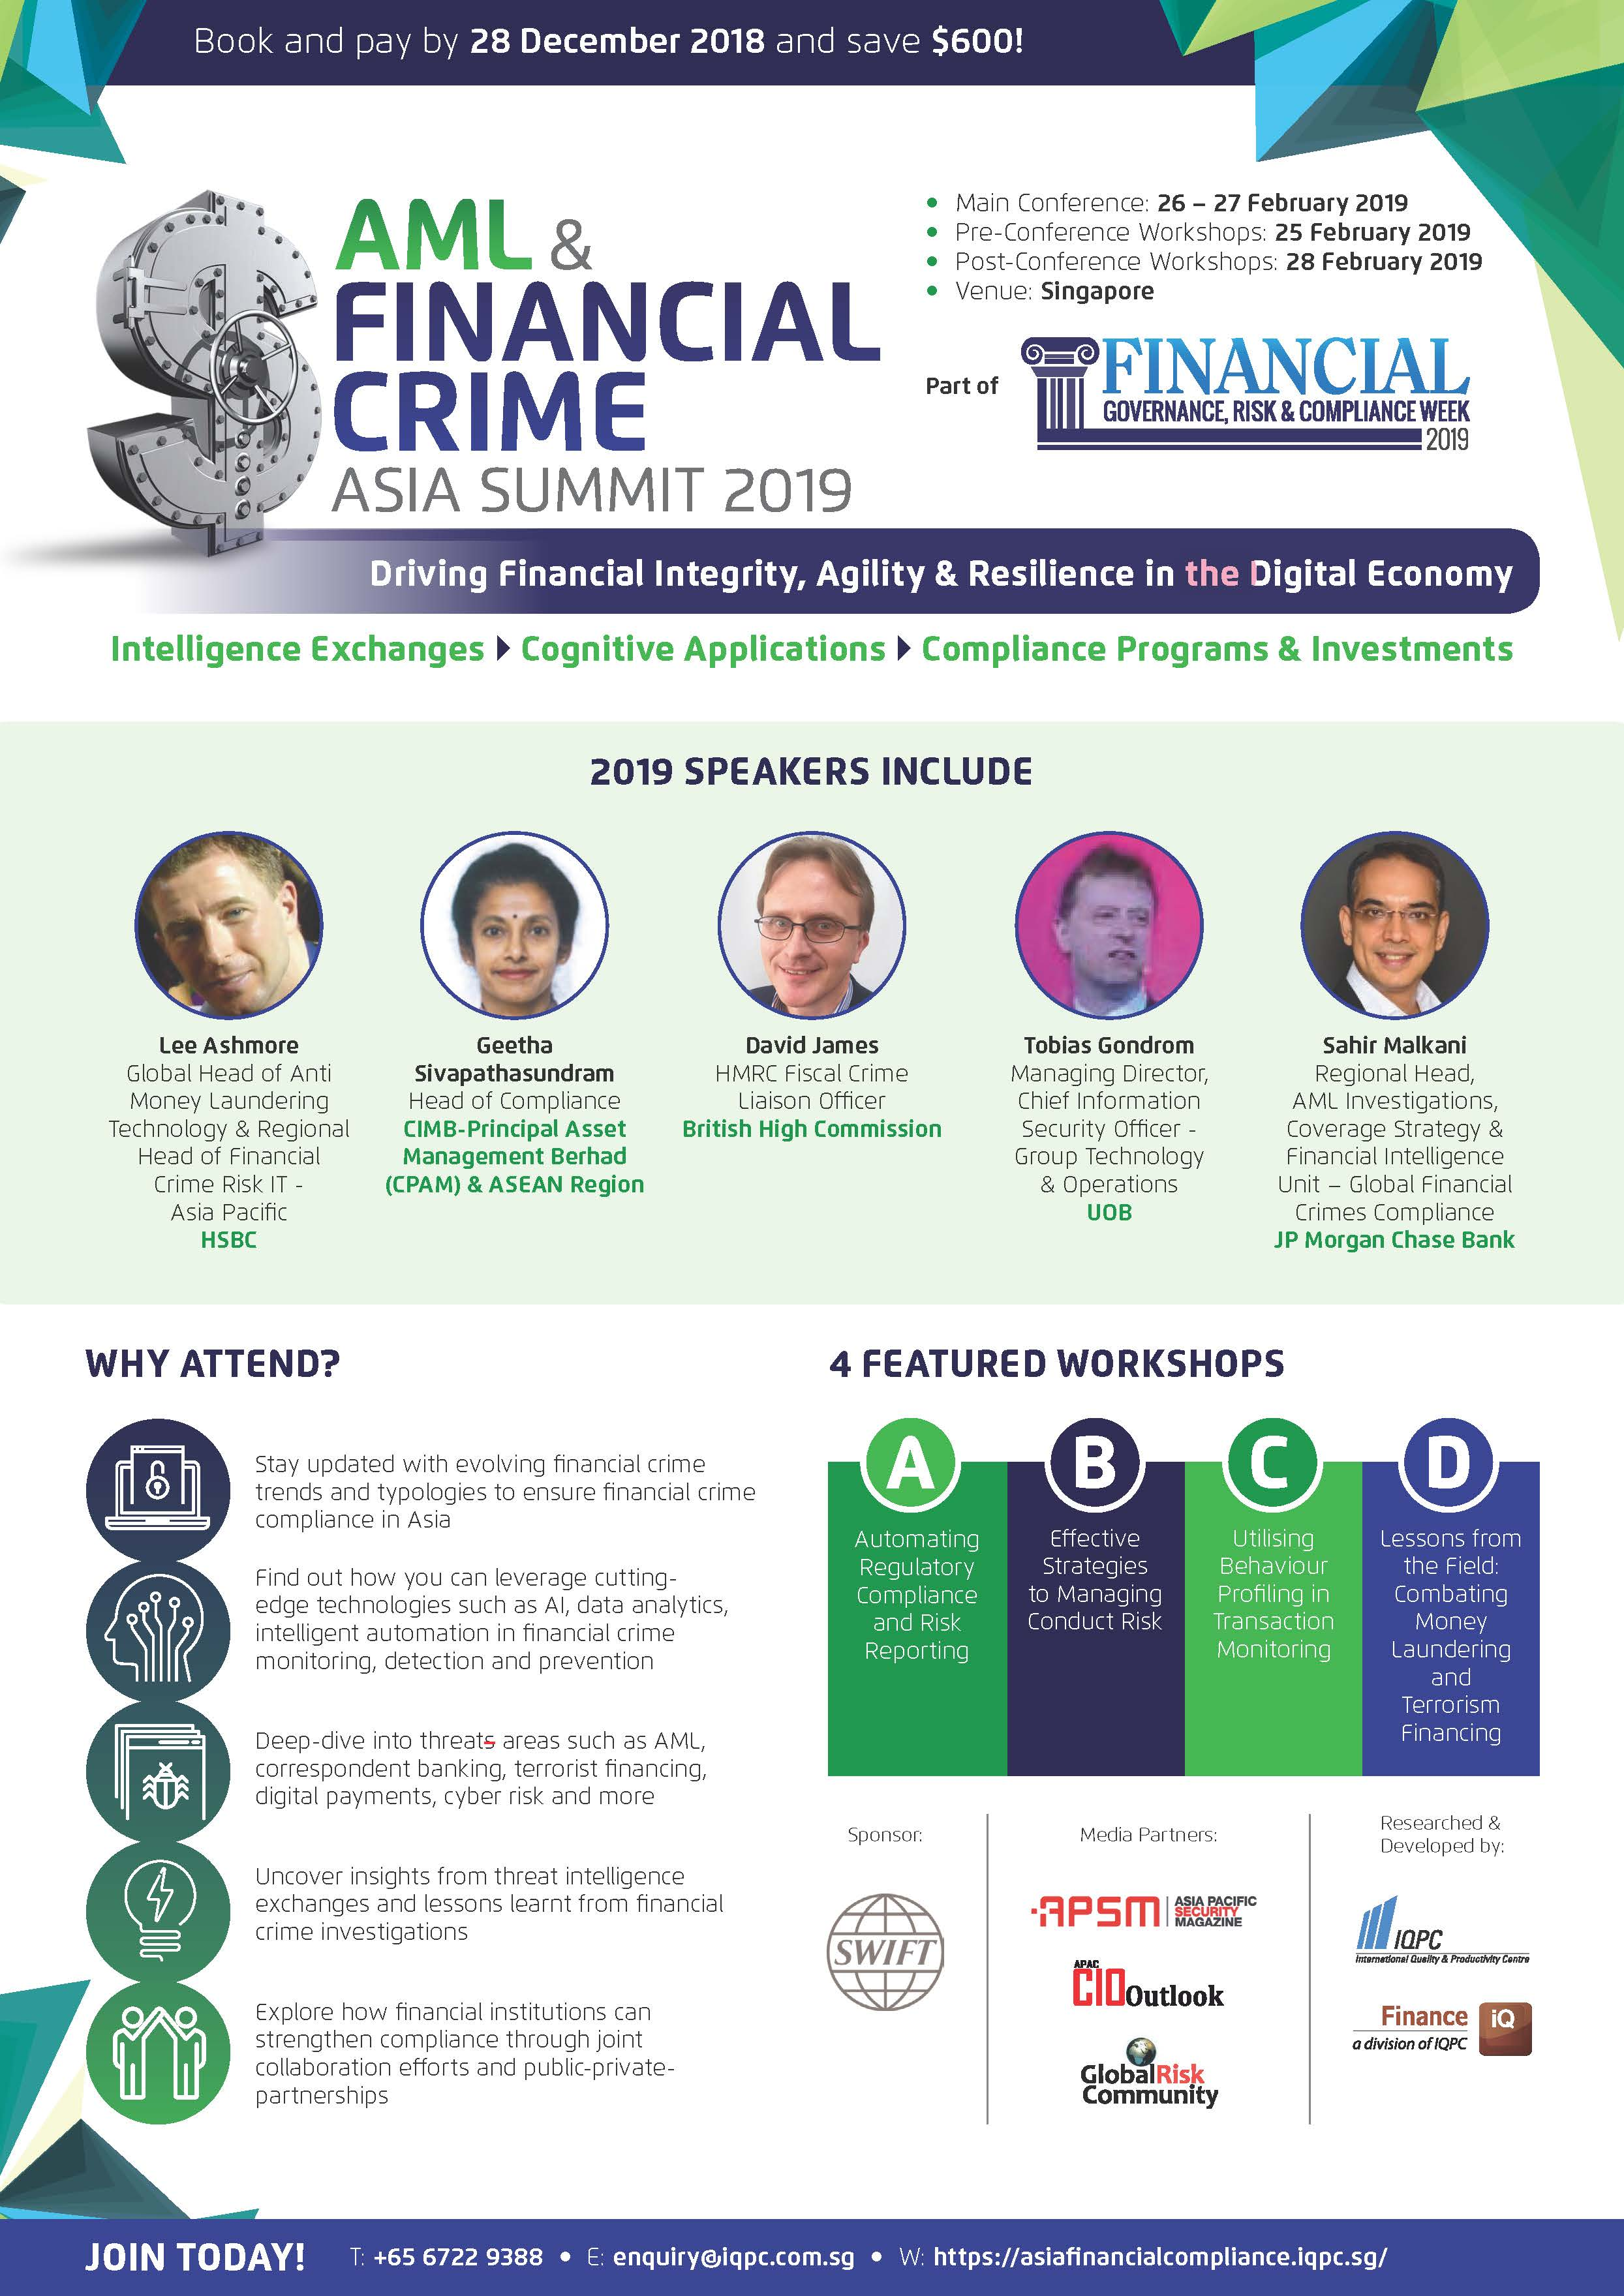 Download the Event Guide - 6th Annual AML & Financial Crime Summit Asia Brochure